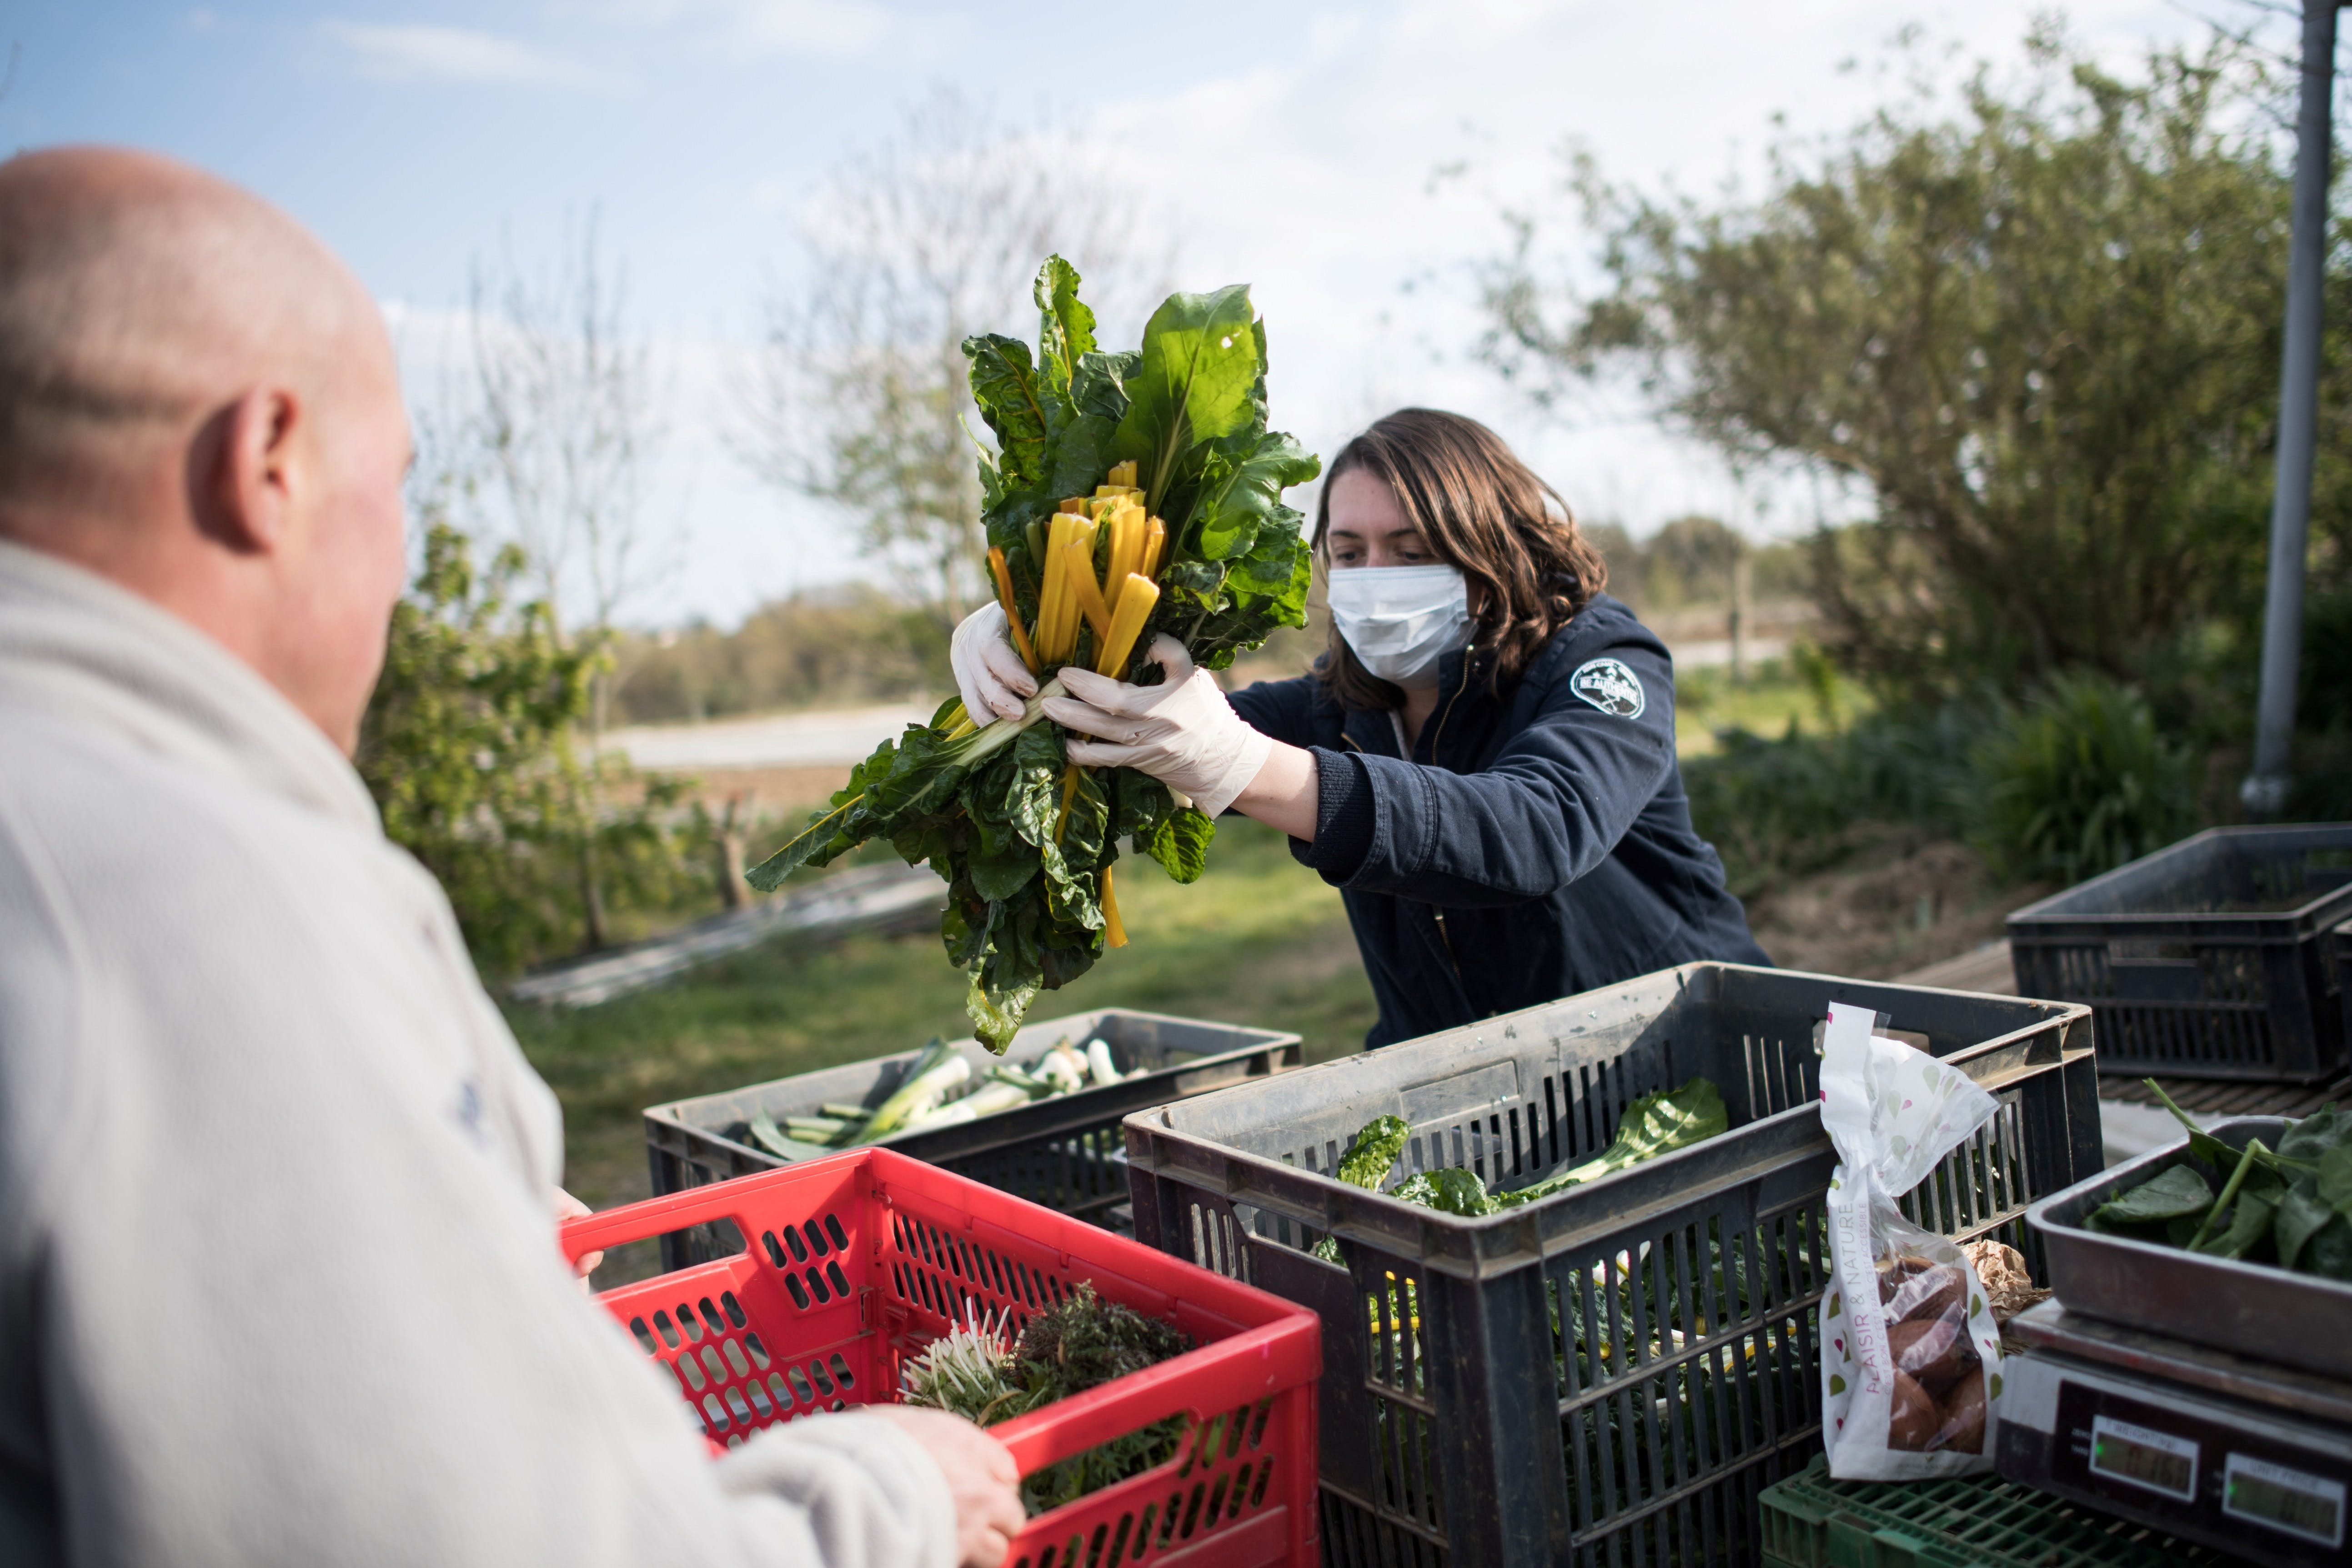 A woman fills the basket of a AMAP (Association pour le maintien d'une agriculture paysanne) member with vegetables during the weekly distribution, in Campbon, western France, on April 2, 2020, on the seventeenth day of a strict lockdown in France to stop the spread of COVID-19 (novel coronavirus). (Photo by Loic VENANCE / AFP) (Photo by LOIC VENANCE/AFP via Getty Images)